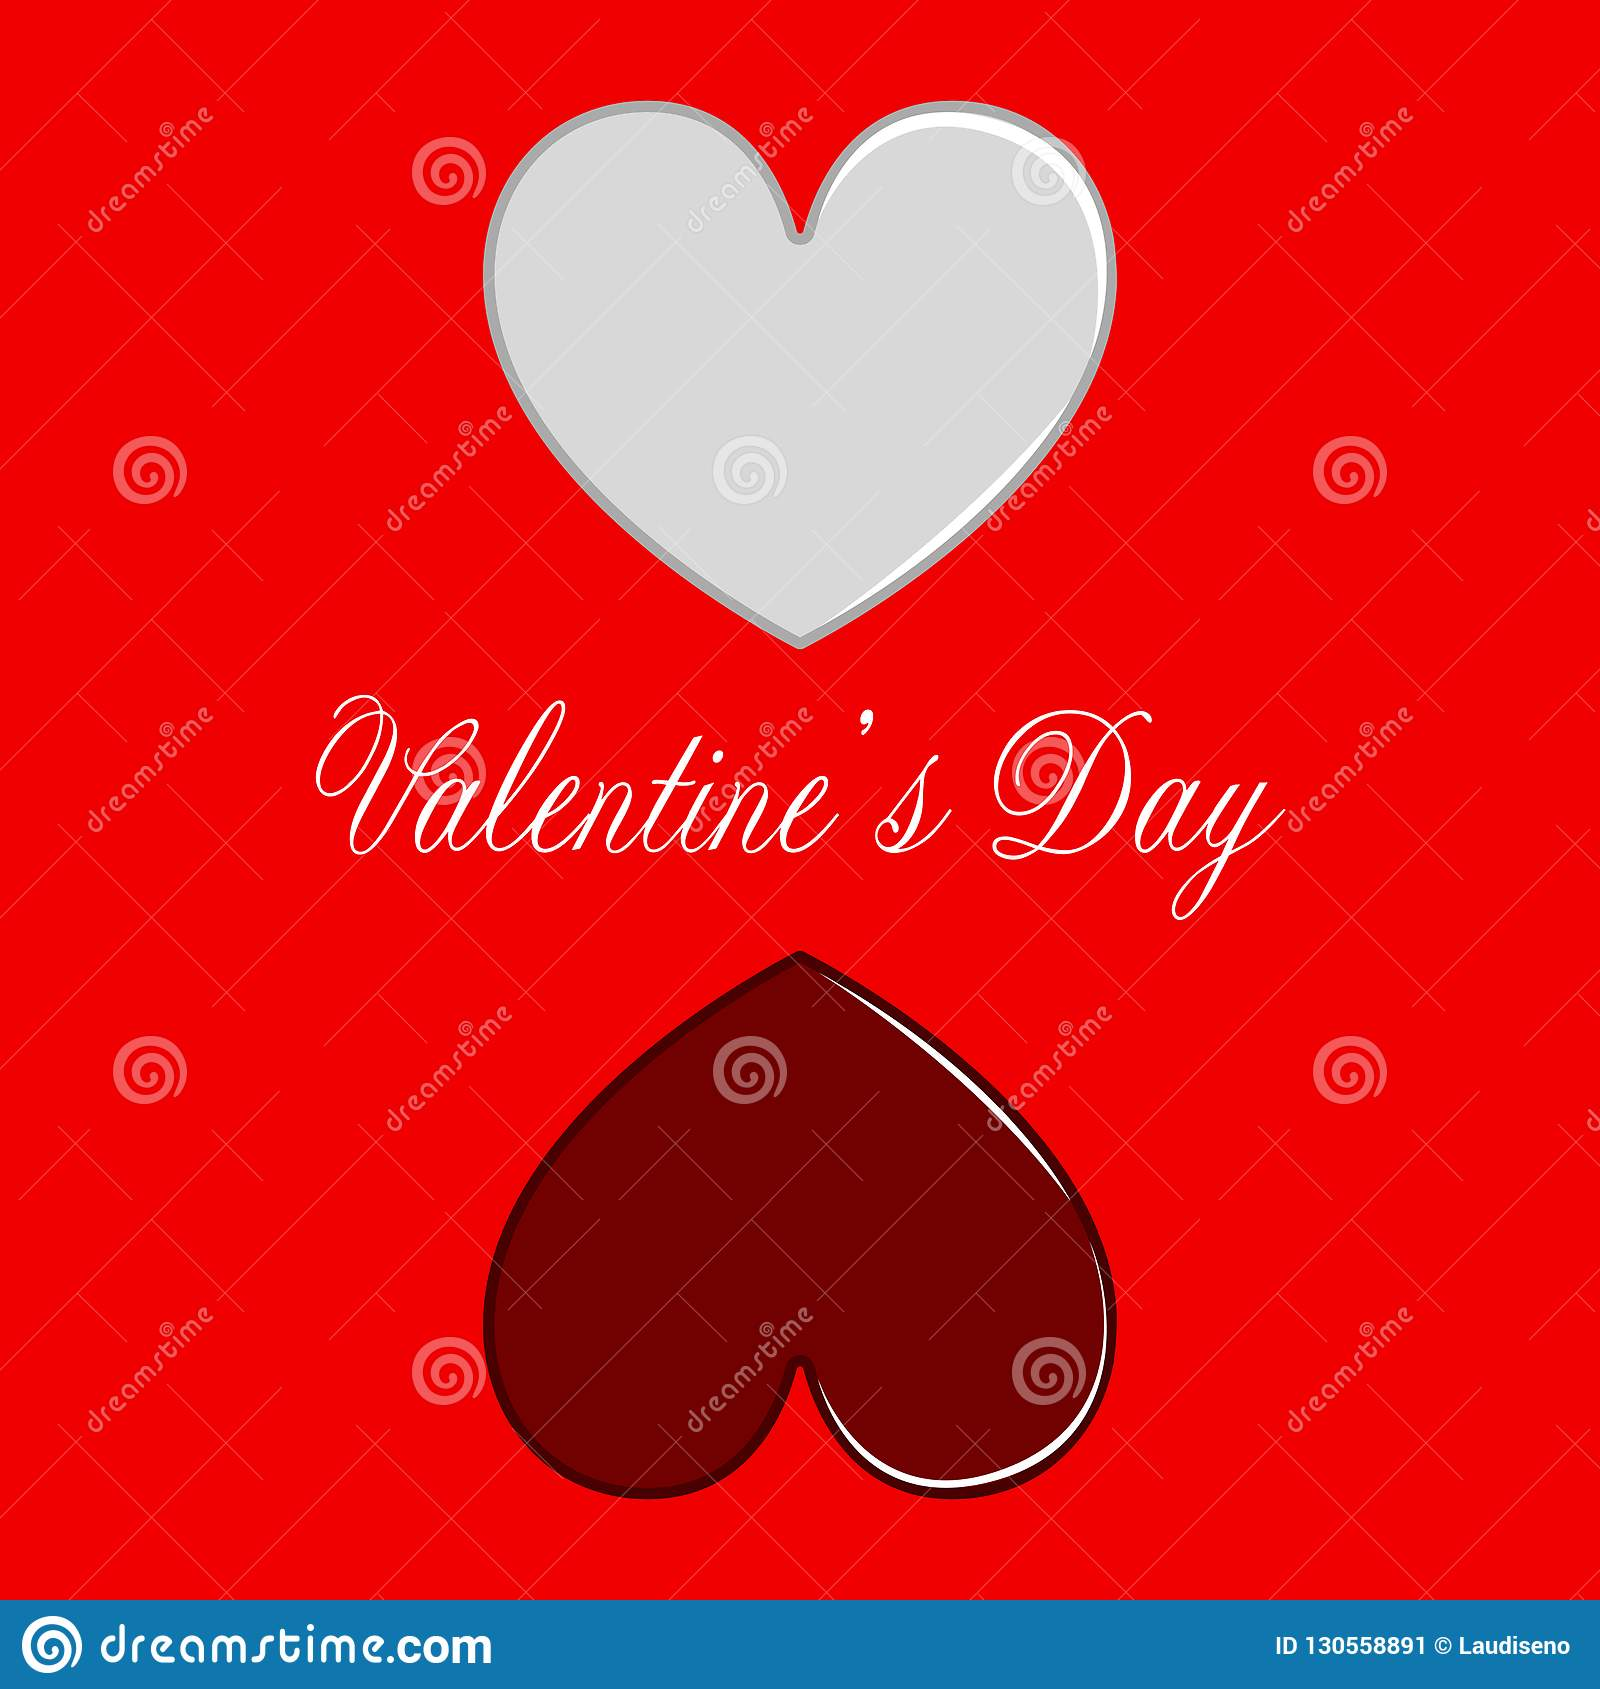 Pair Of Heart Shapes Valentine Day Stock Vector